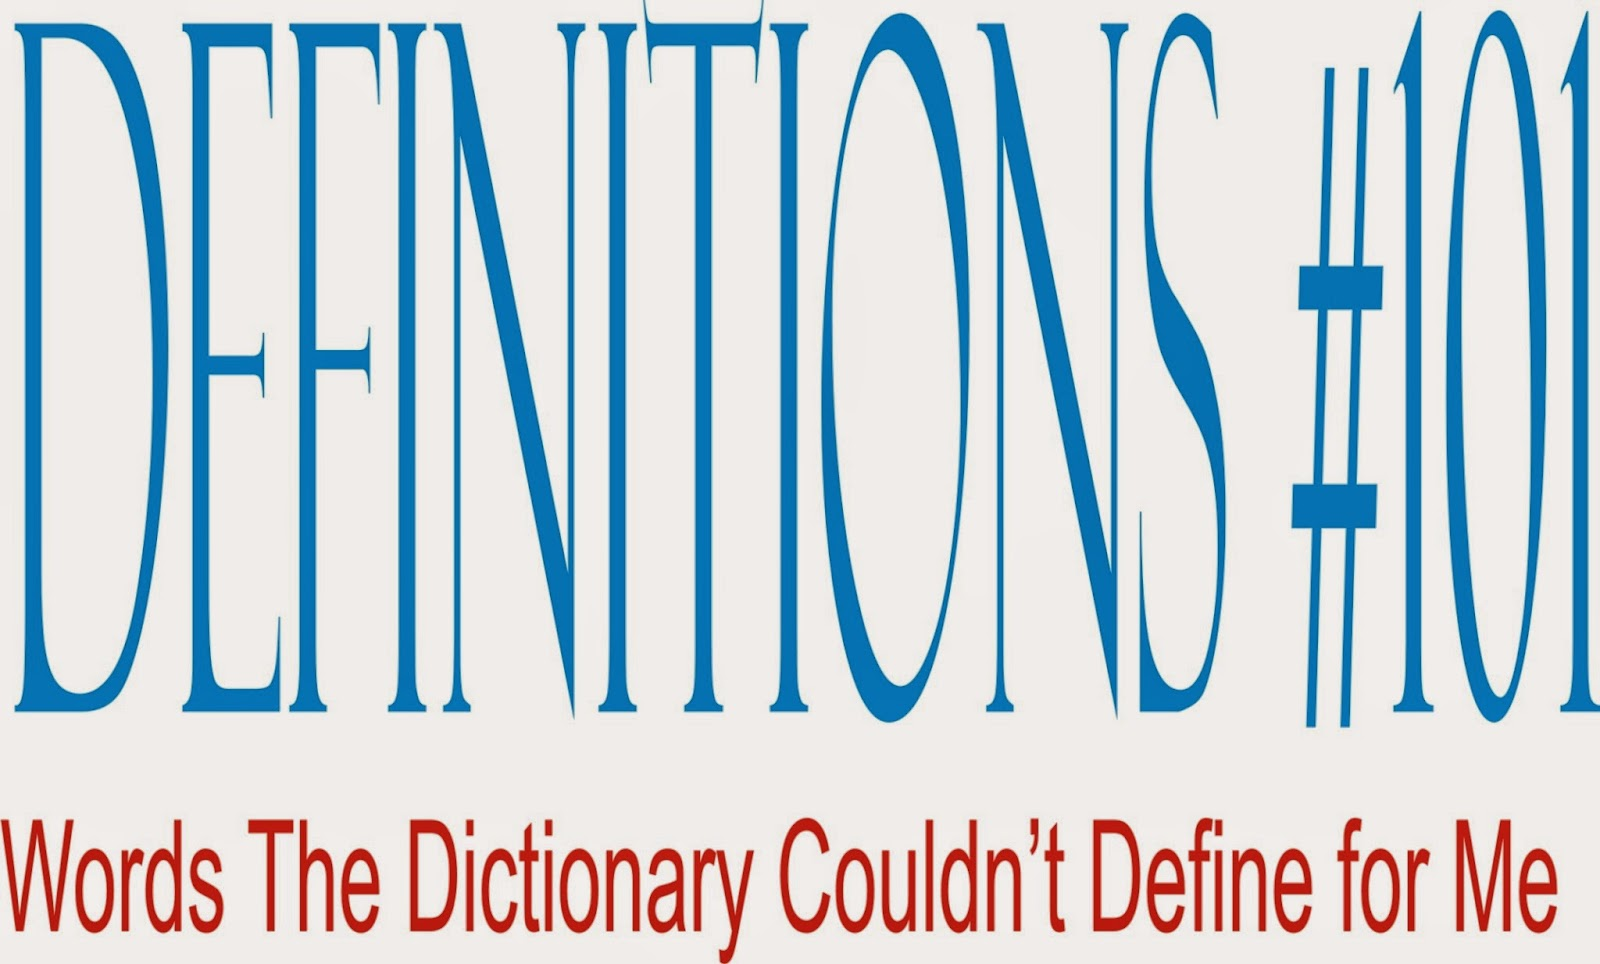 #Definitions101: My Witty and Funny Definitions